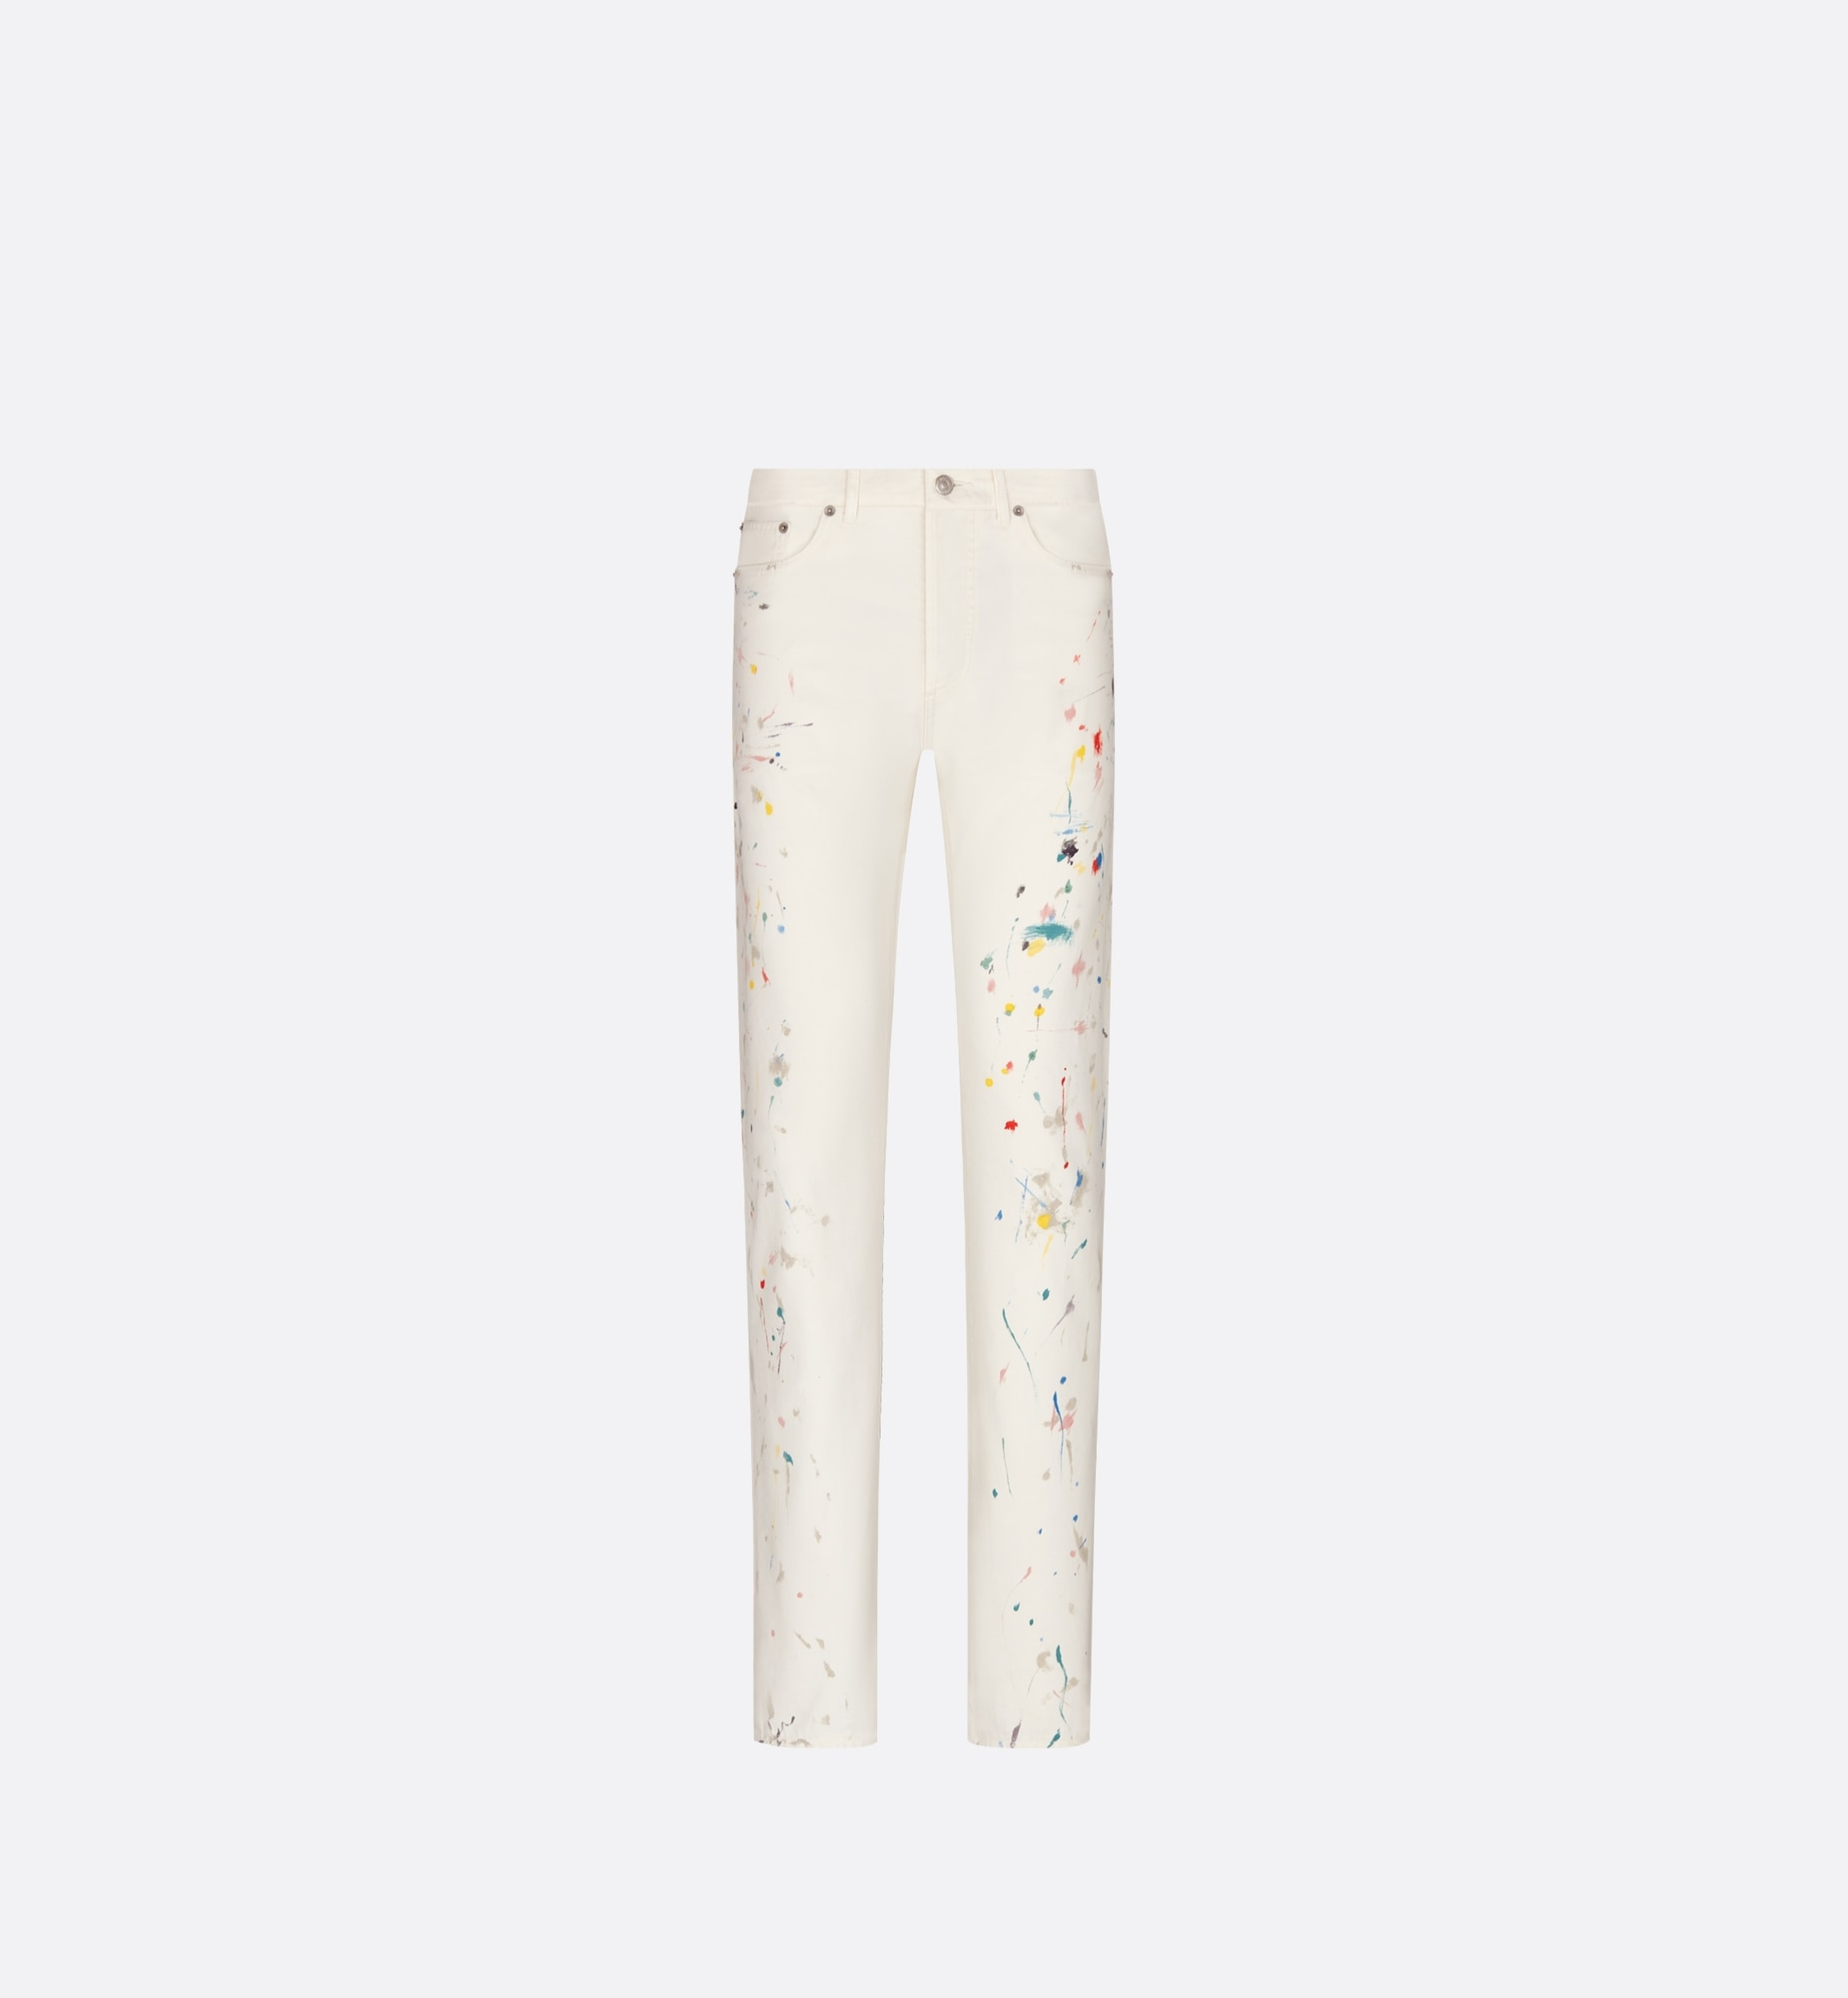 slim-fit jeans | Dior Front view